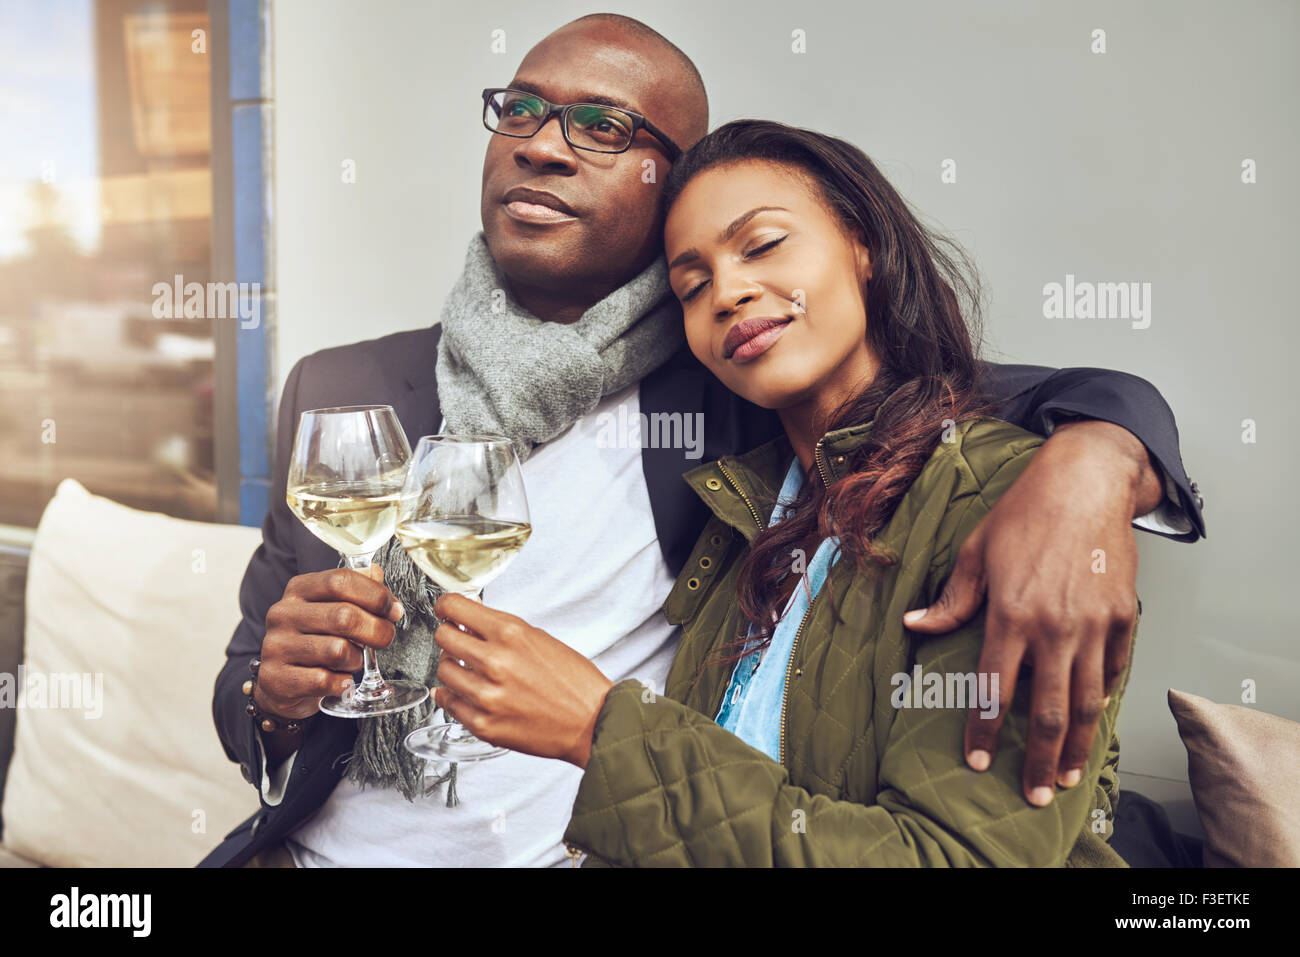 Blissful romantic young African couple relaxing in each others arms while enjoying a drink of white wine at a restaurant - Stock Image